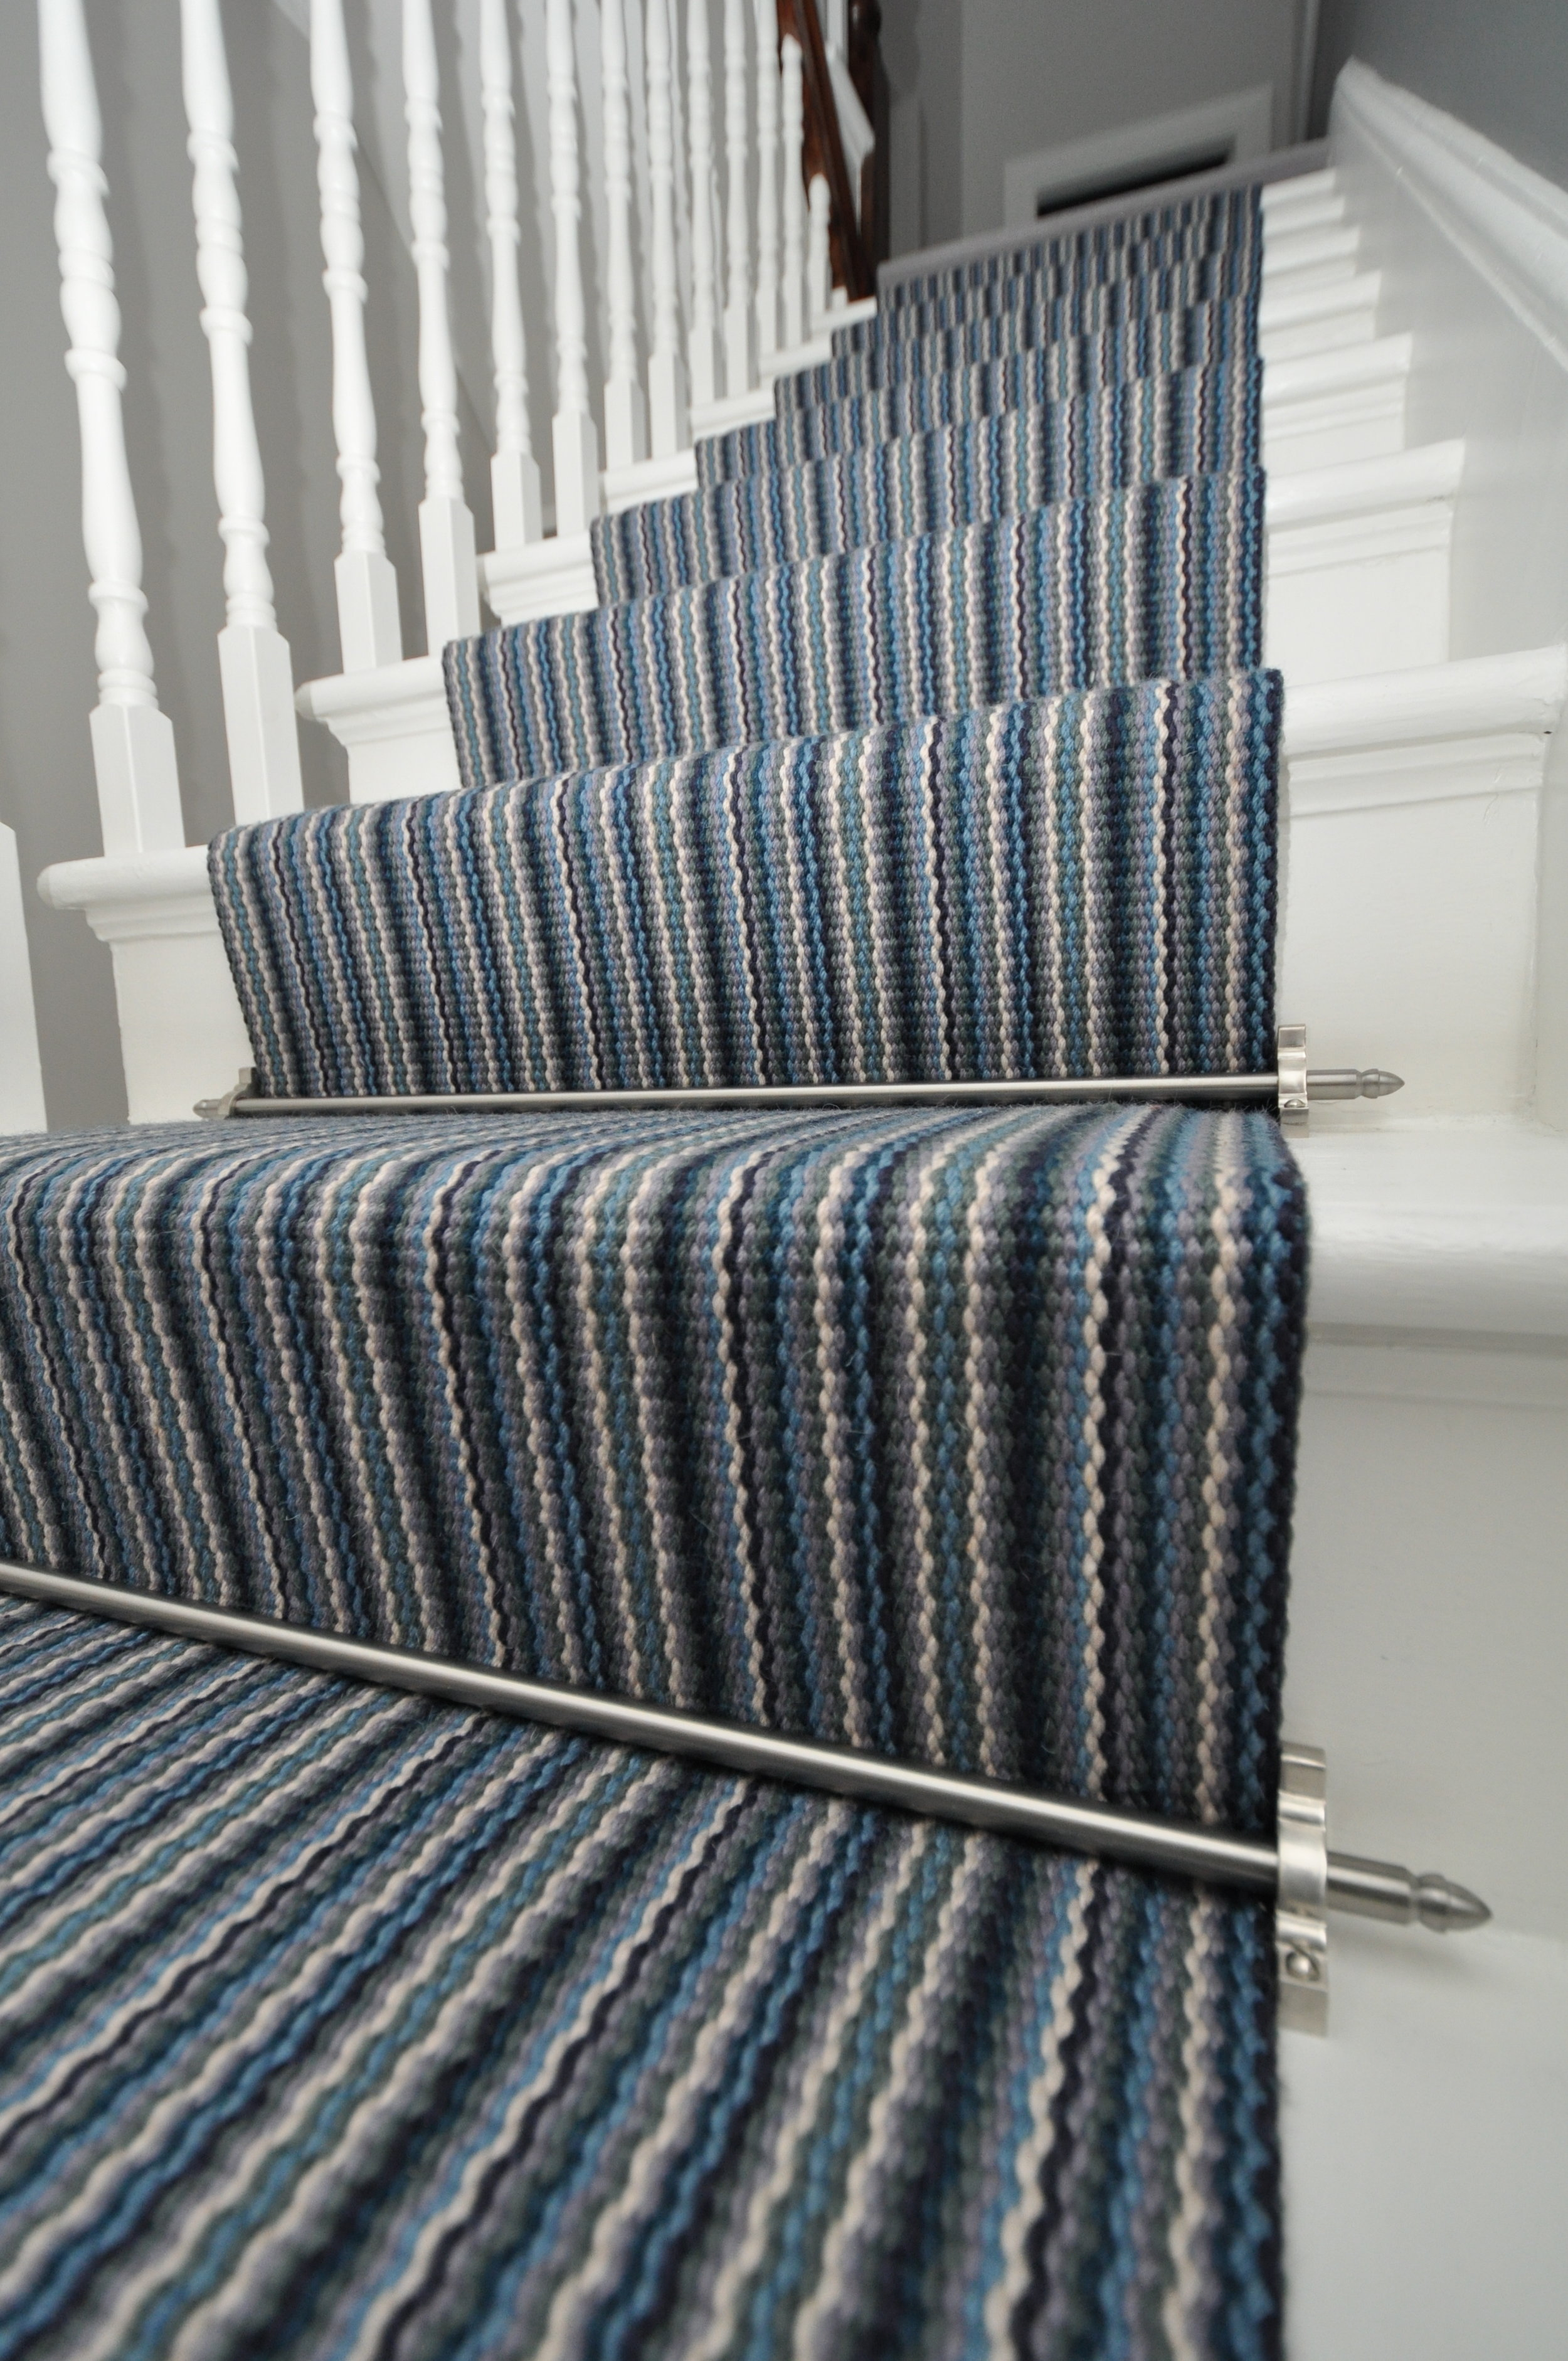 flatweave-stair-runners-london-bowloom-carpet-geometric-off-the-loom-DSC_1526.jpg